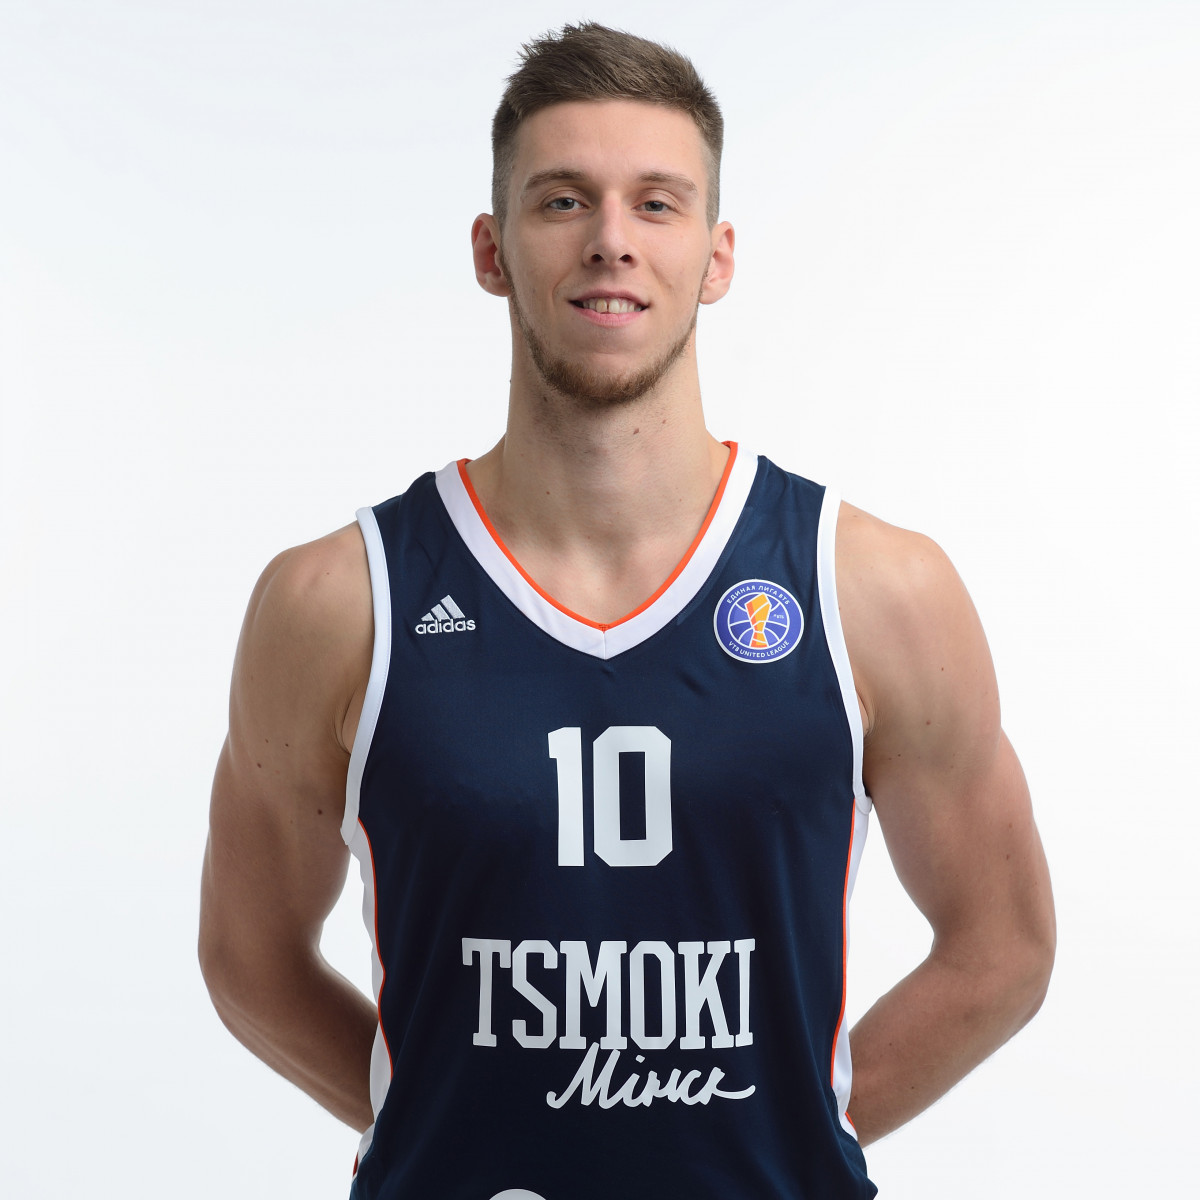 Photo of Vitali Liutych, 2018-2019 season